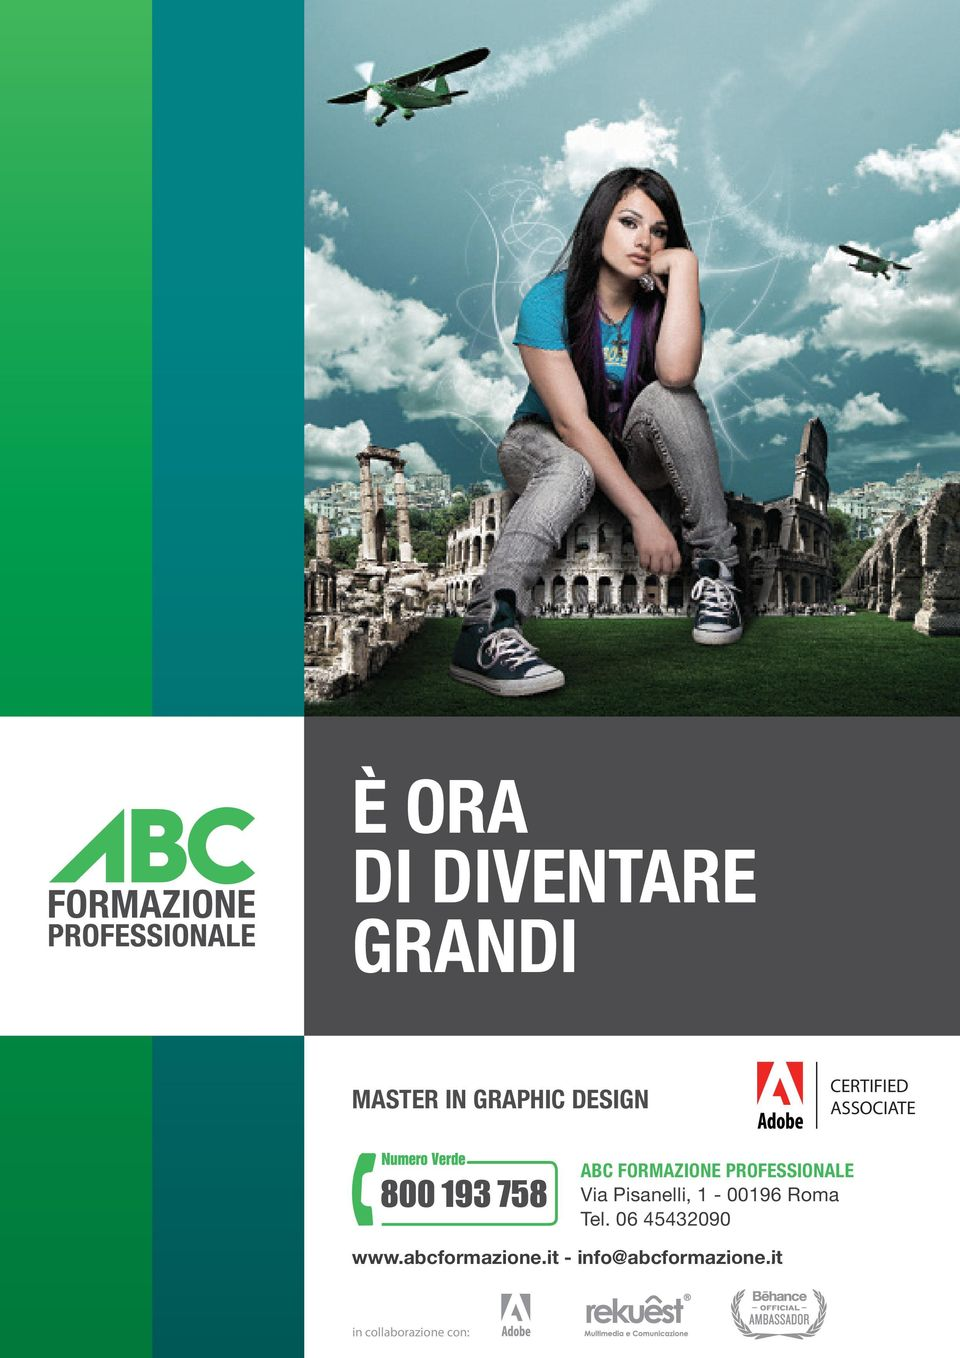 CERTIFIED ASSOCIATE AbC formazione PROfESSIONALE Via Pisanelli, 1-00196